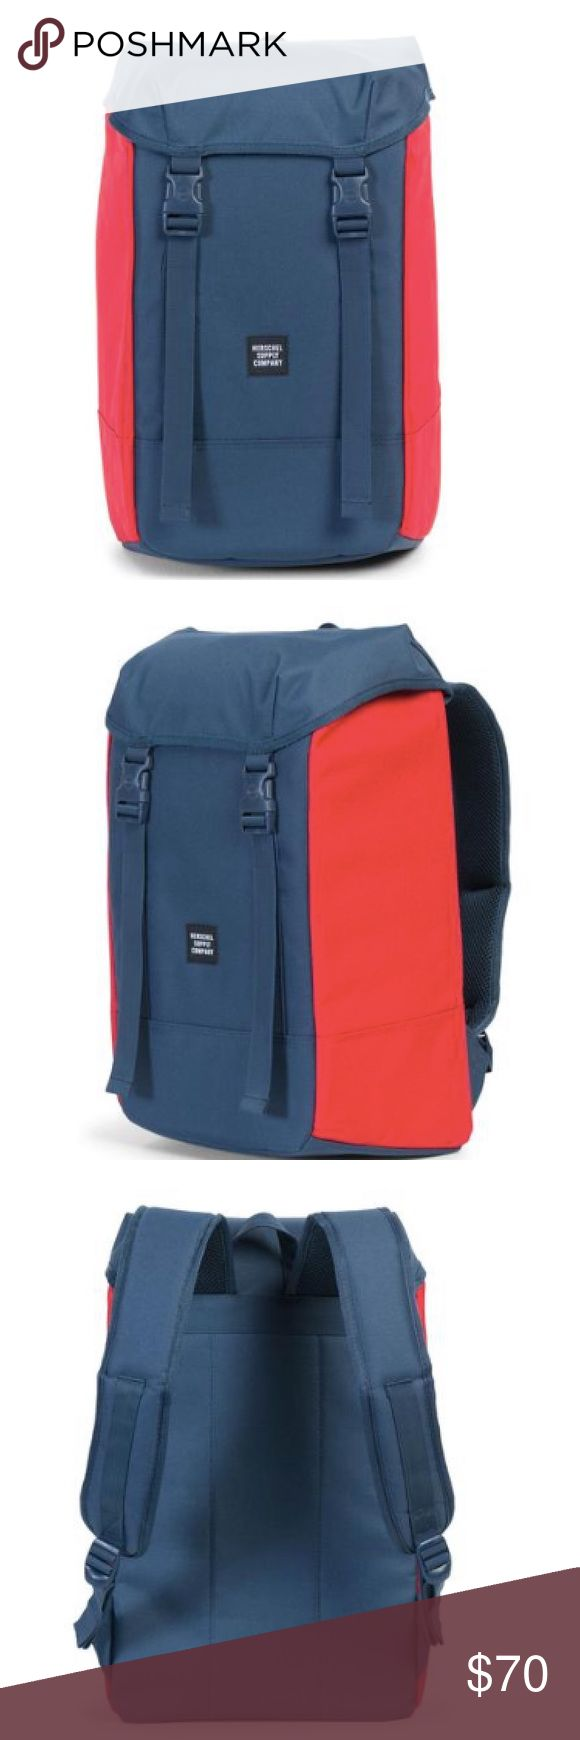 "NWT Herschel Supply Co. Journey Backpack Navy/Red Featuring a cinch closure concealed by a slender top flap, this backpack unites everyday practicality with clean design.  •Signature striped fabric liner •15"" laptop sleeve and internal key clip •Adjustable drawstring closure •Clip fastened adjustable webbing straps •Contoured shoulder straps •Reinforced base •ID woven label  DIMENSIONS 19.25""(H) x 11.5""(W) x 7""(D), 24L Herschel Supply Company Bags Backpacks"